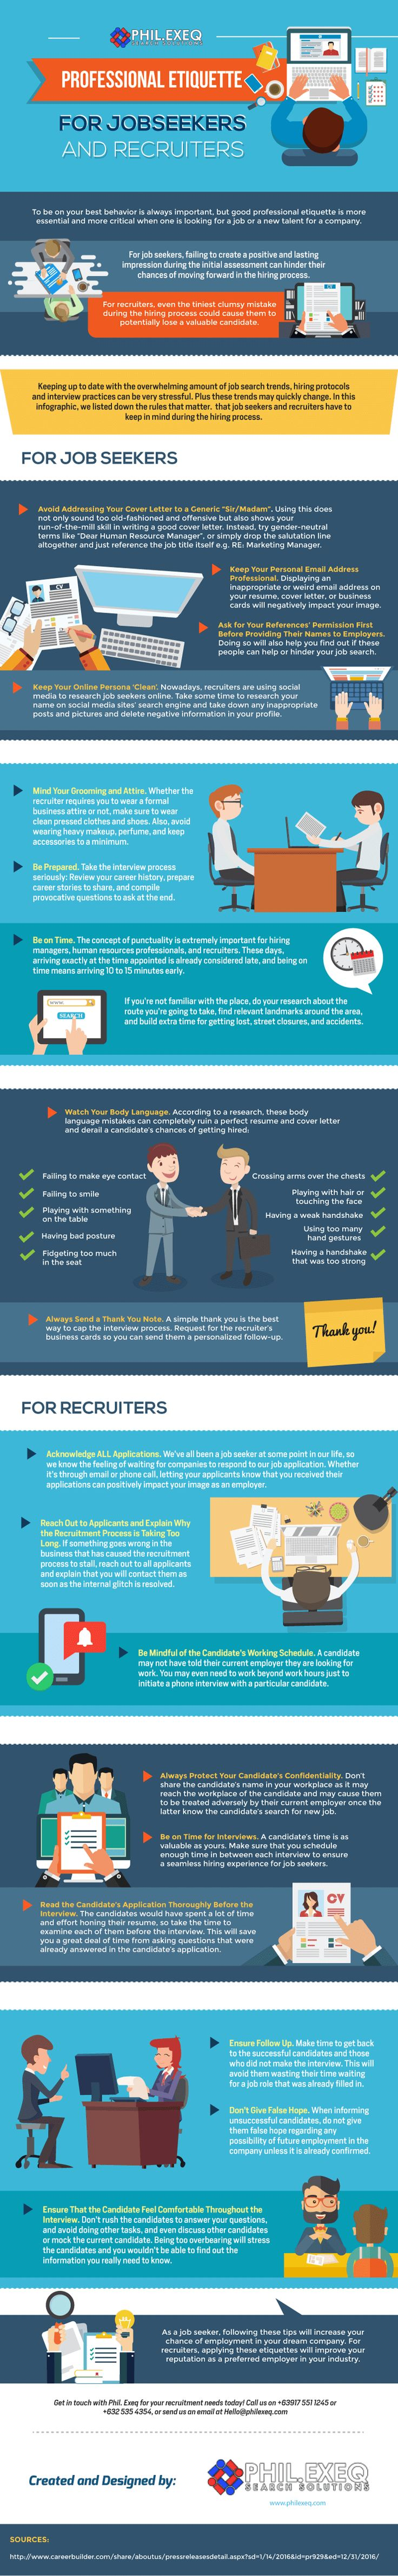 Professional etiquette is important! This infographic tells you what you should do to be your very best professional self!